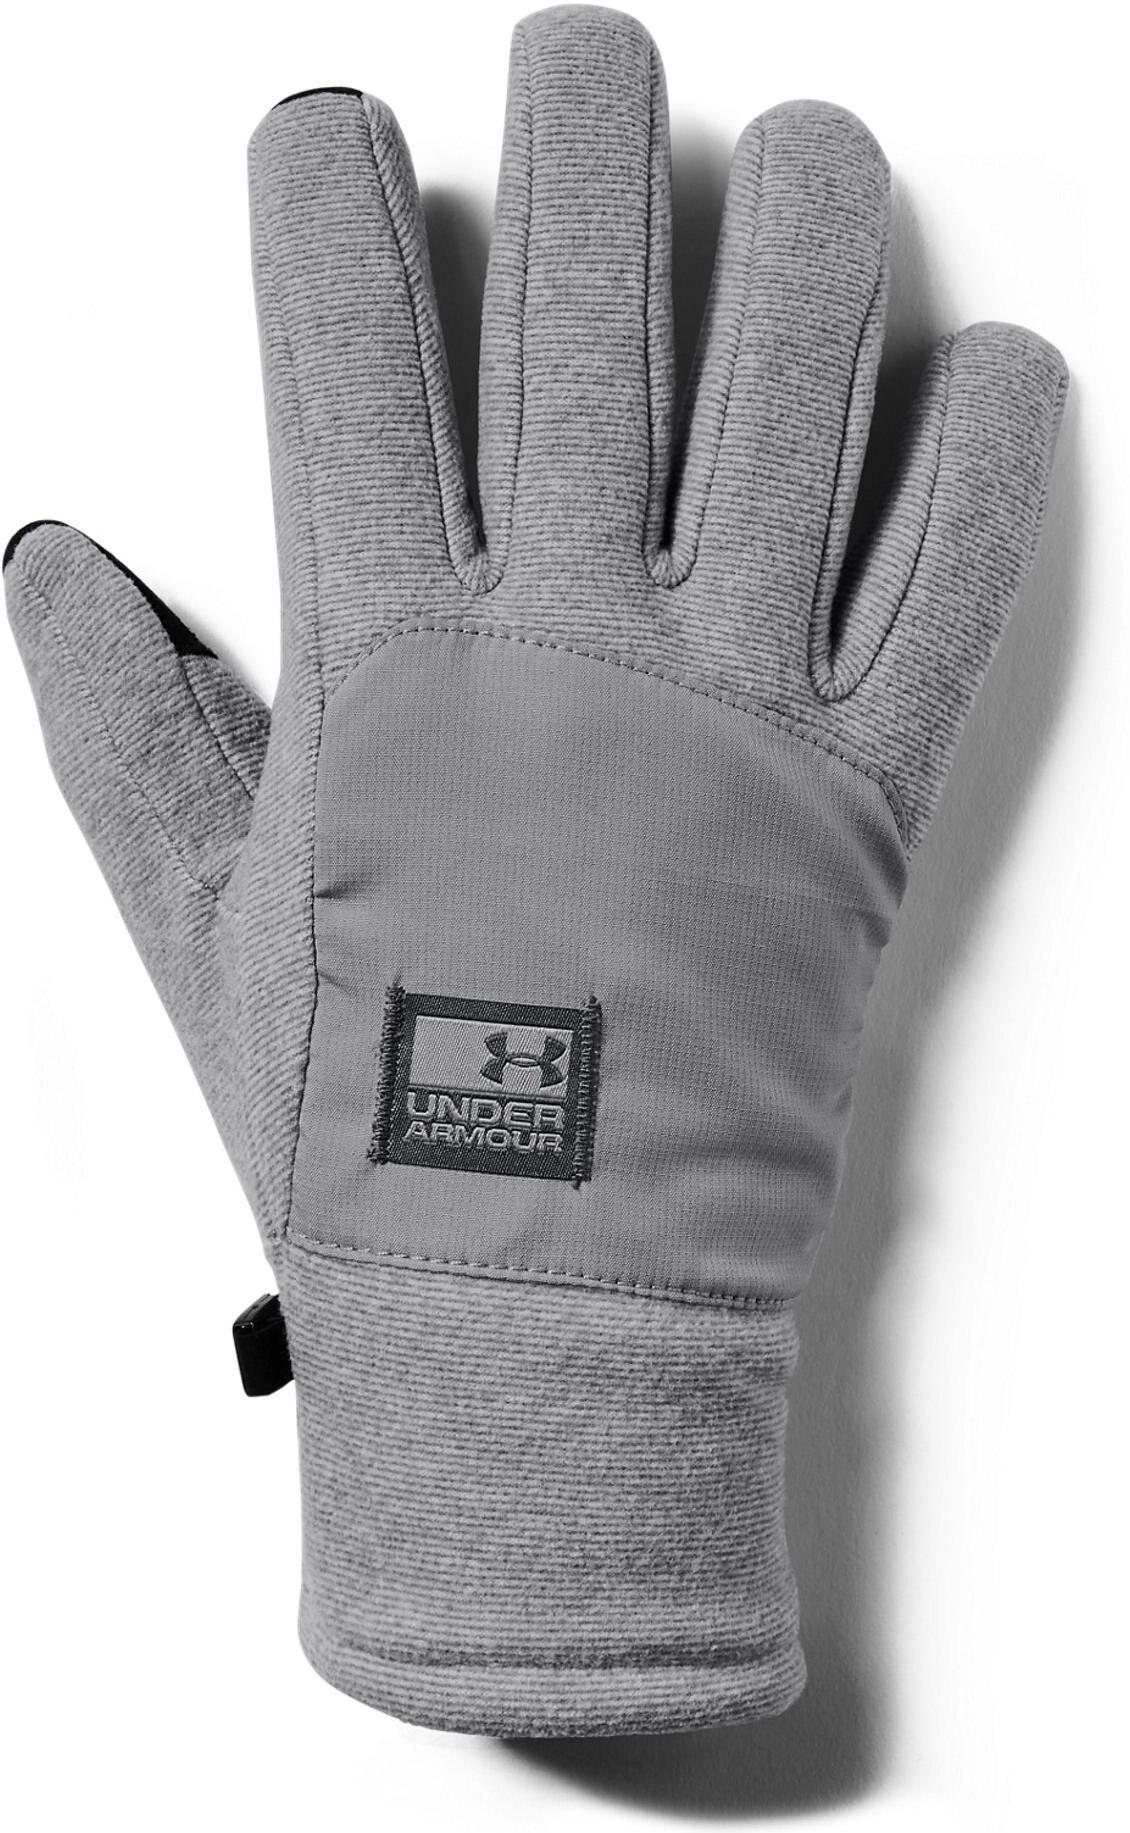 Rukavice Under Armour MEN'S CGI FLEECE GLOVE